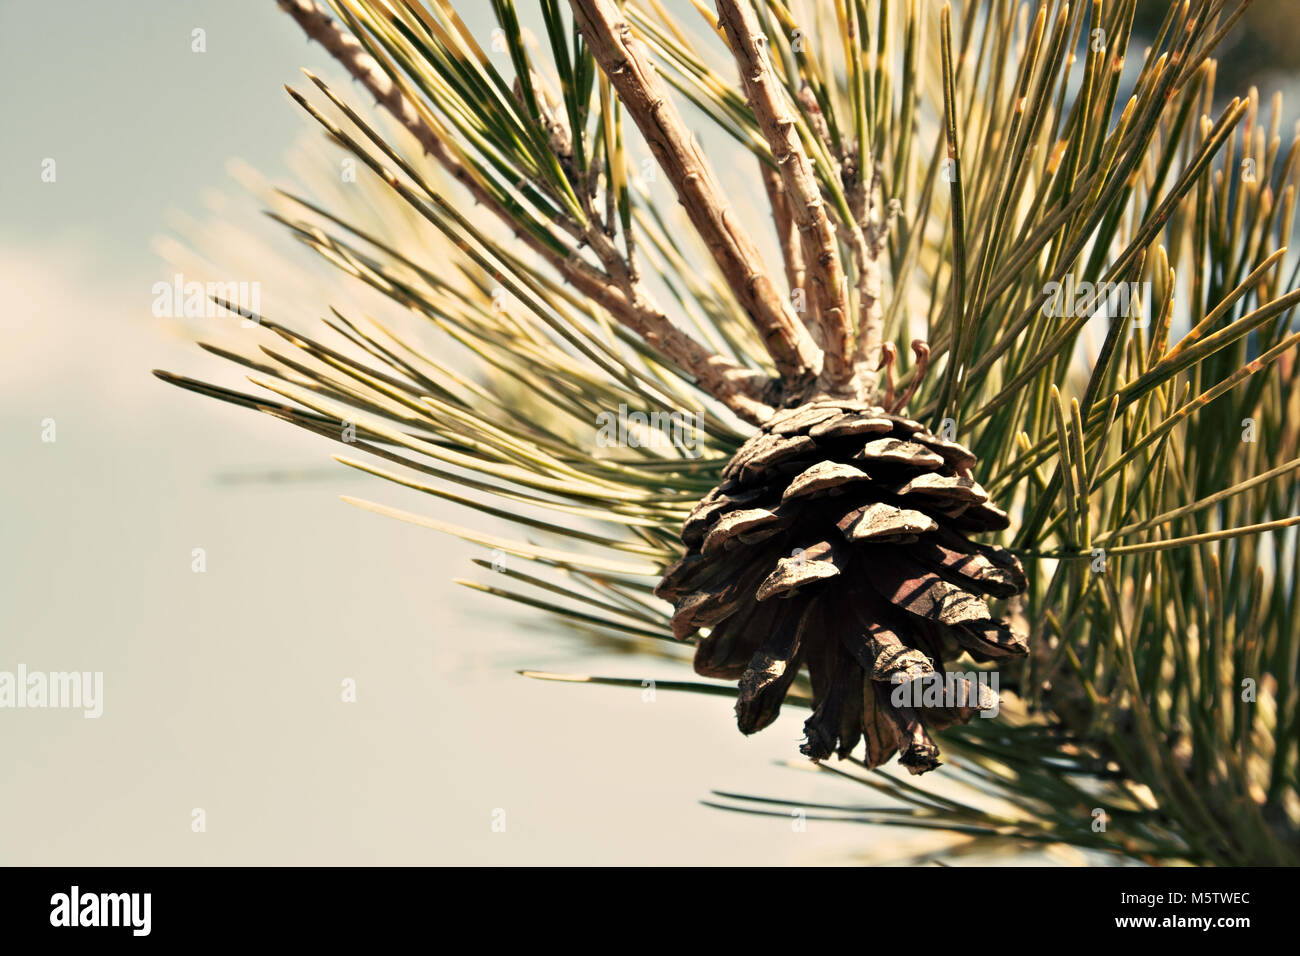 conifer tree detail - Stock Image